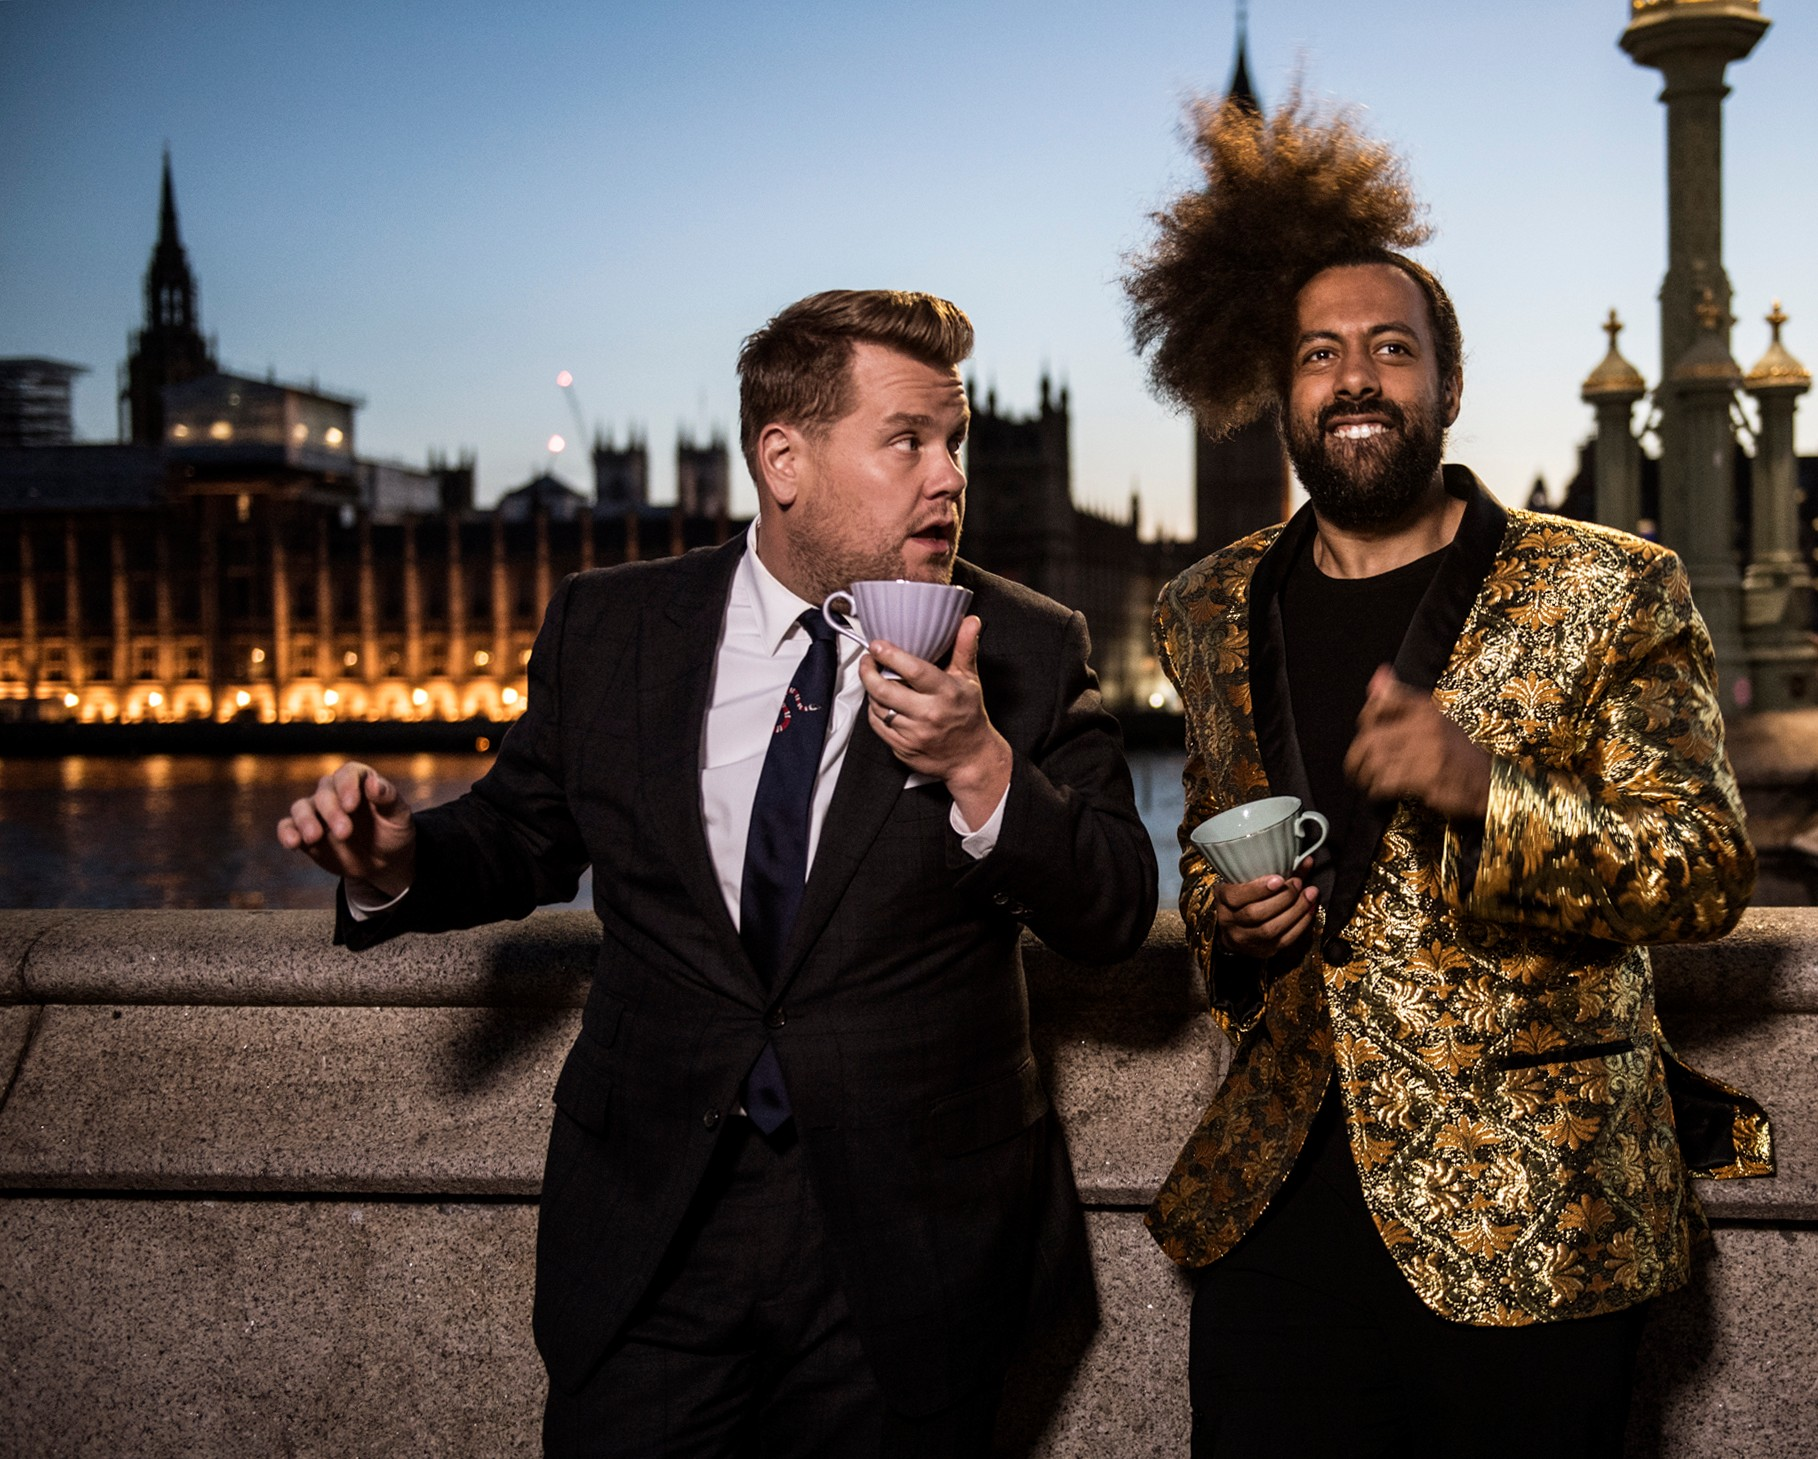 James Corden brings The Late Late Show to the UK (Sky)